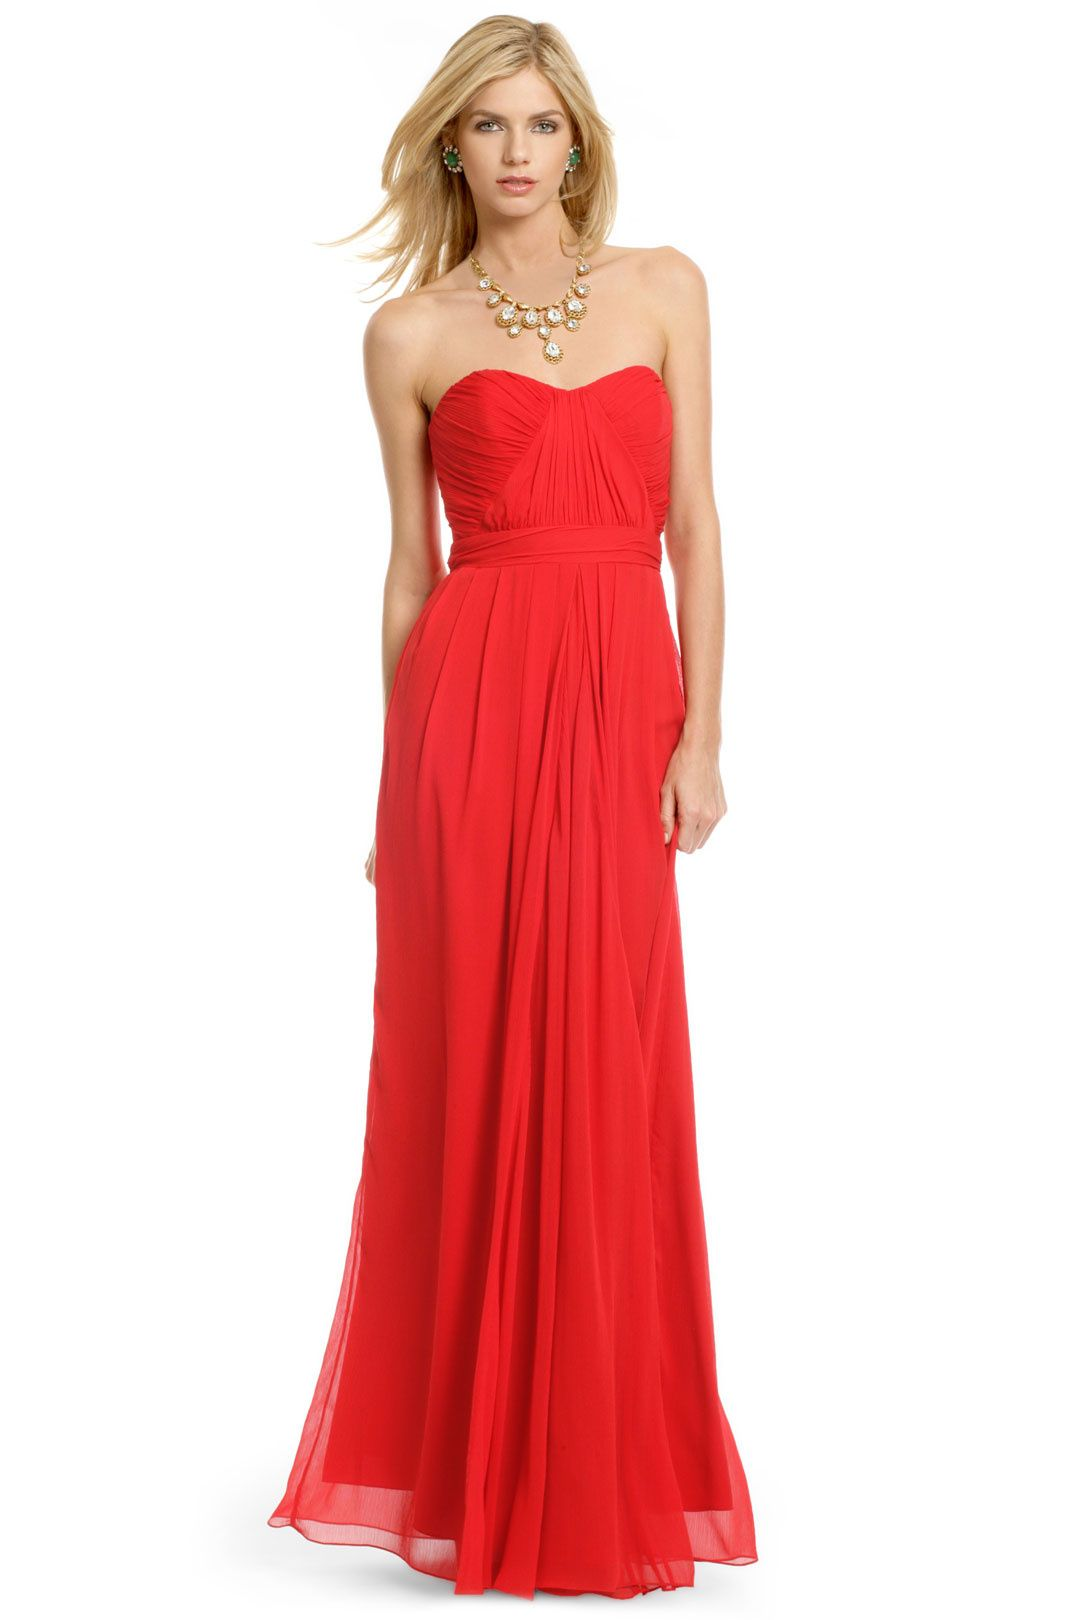 ruby red bridesmaid dresses prices | Top 50 Ruby-Red Bridesmaid ...